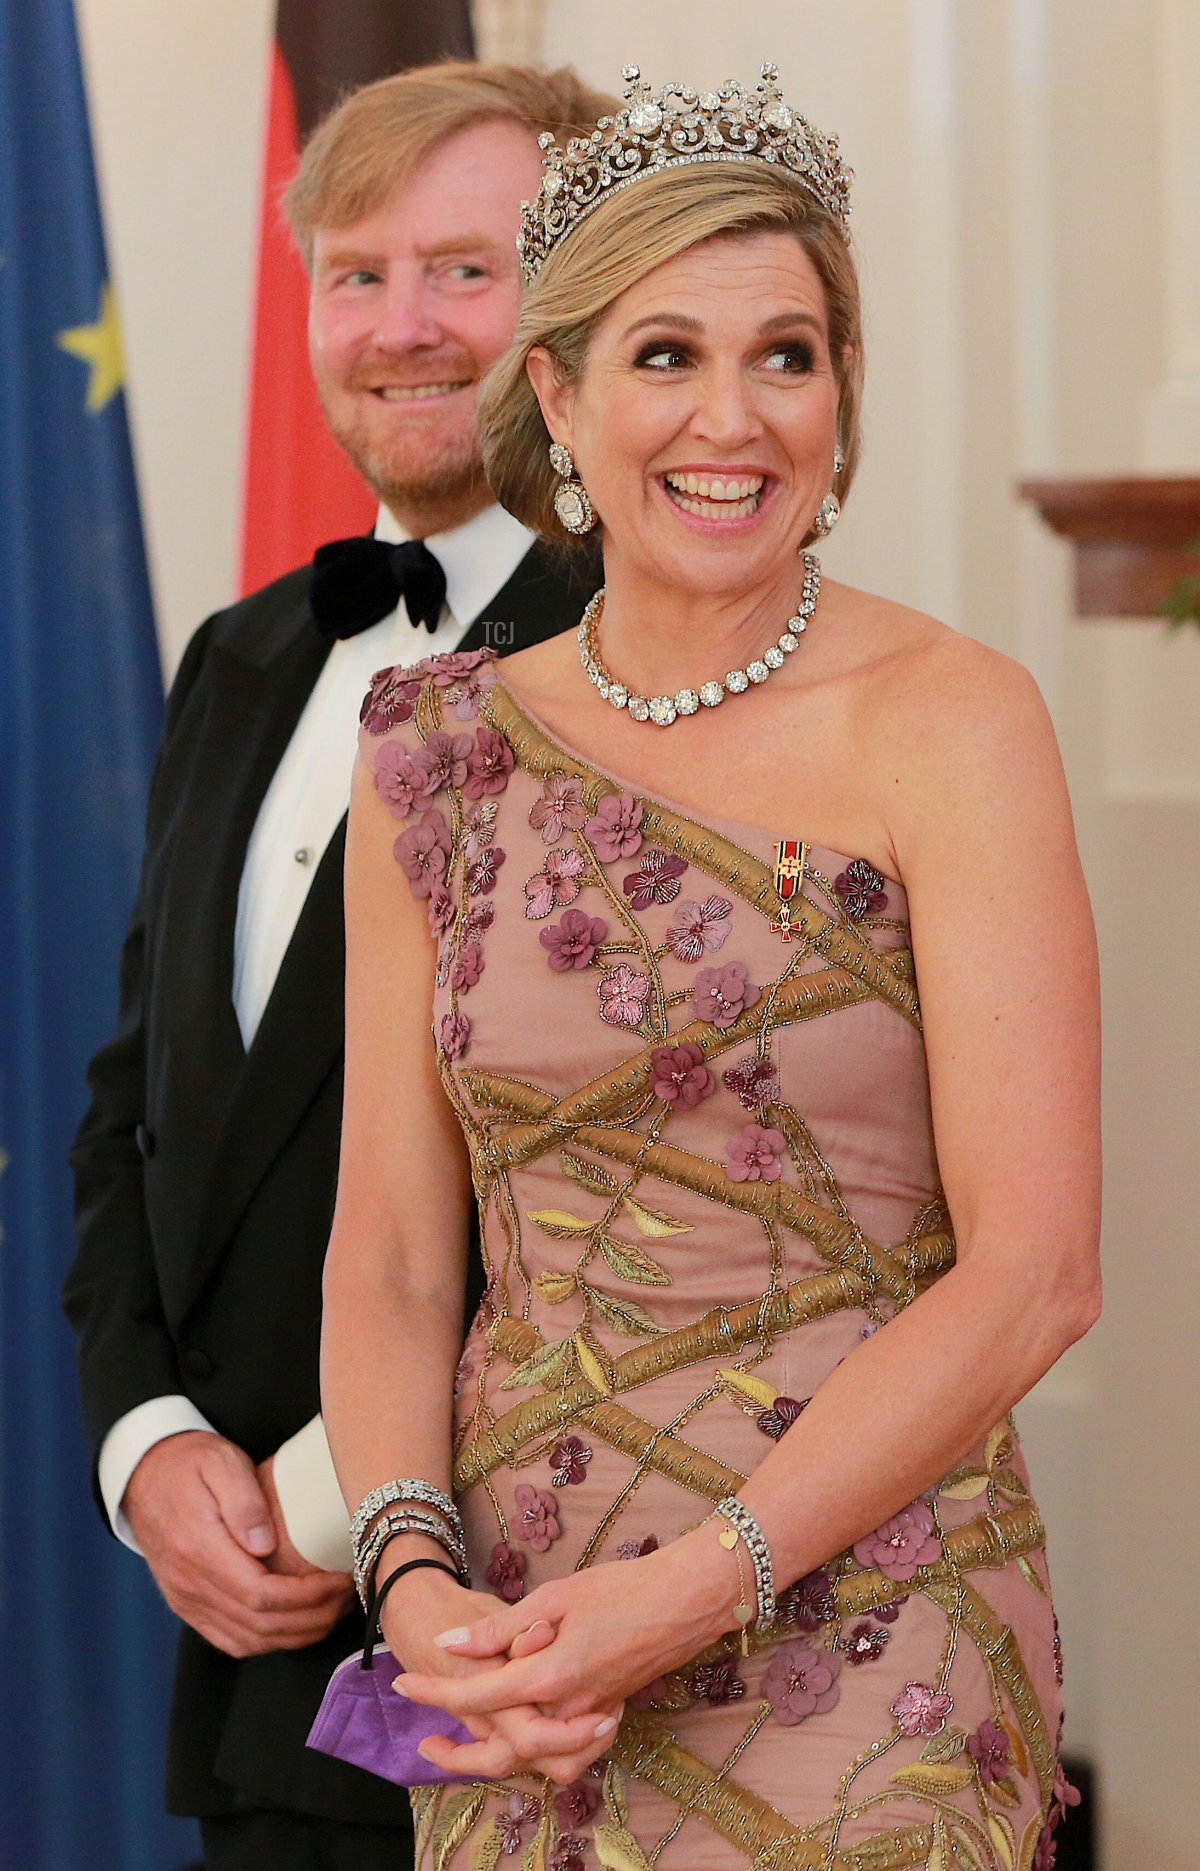 King Willem-Alexander of The Netherlands and Queen Maxima of The Netherlands attend a banquet at Bellevue Palace on July 5, 2021 in Berlin, Germany